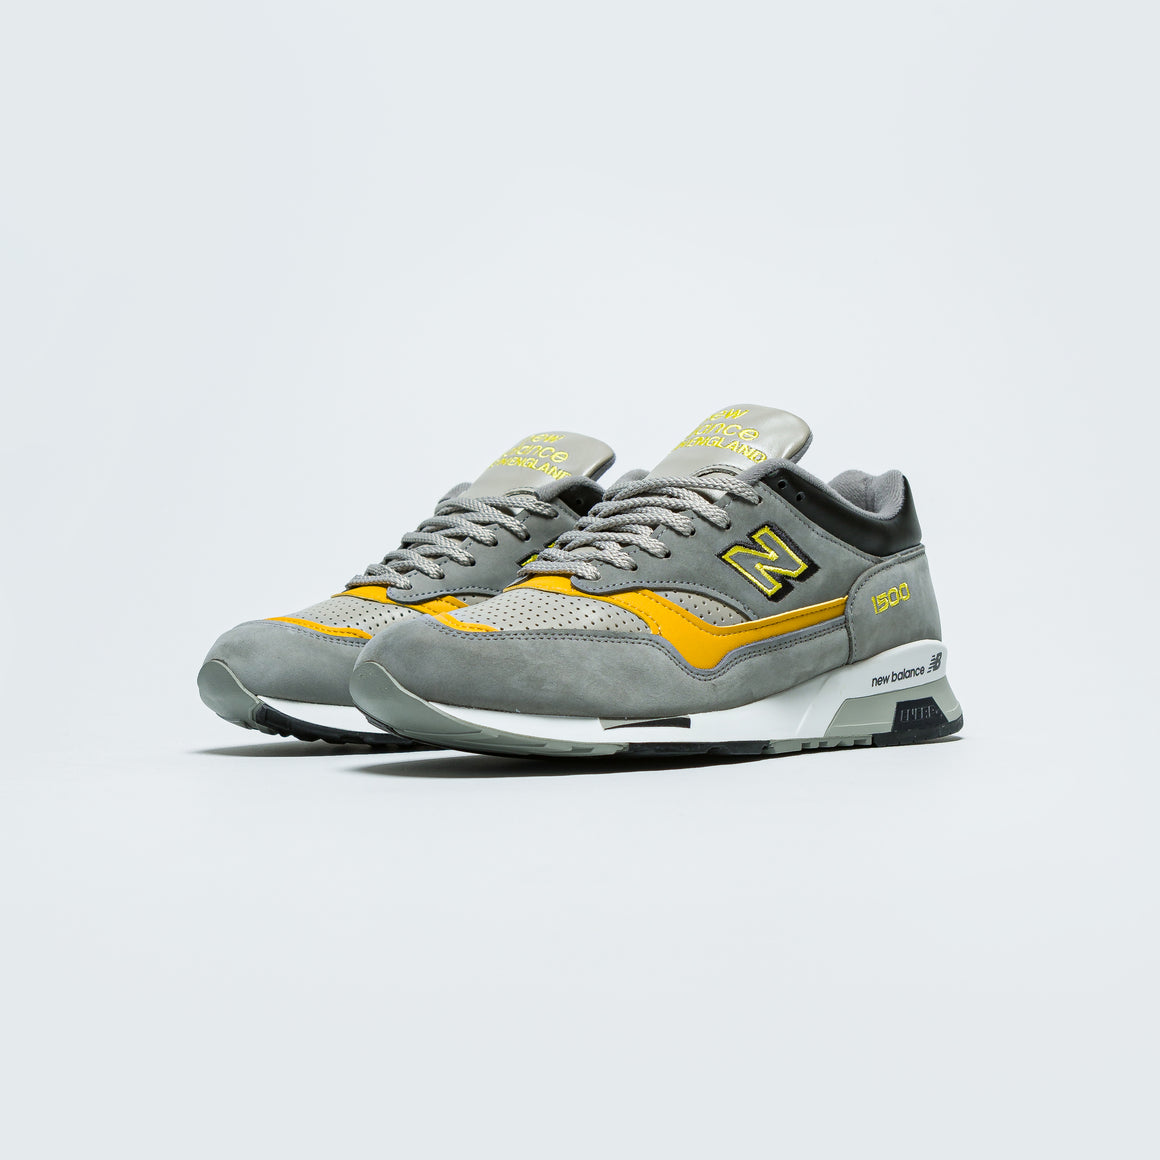 New Balance - M1500GGY - Up There